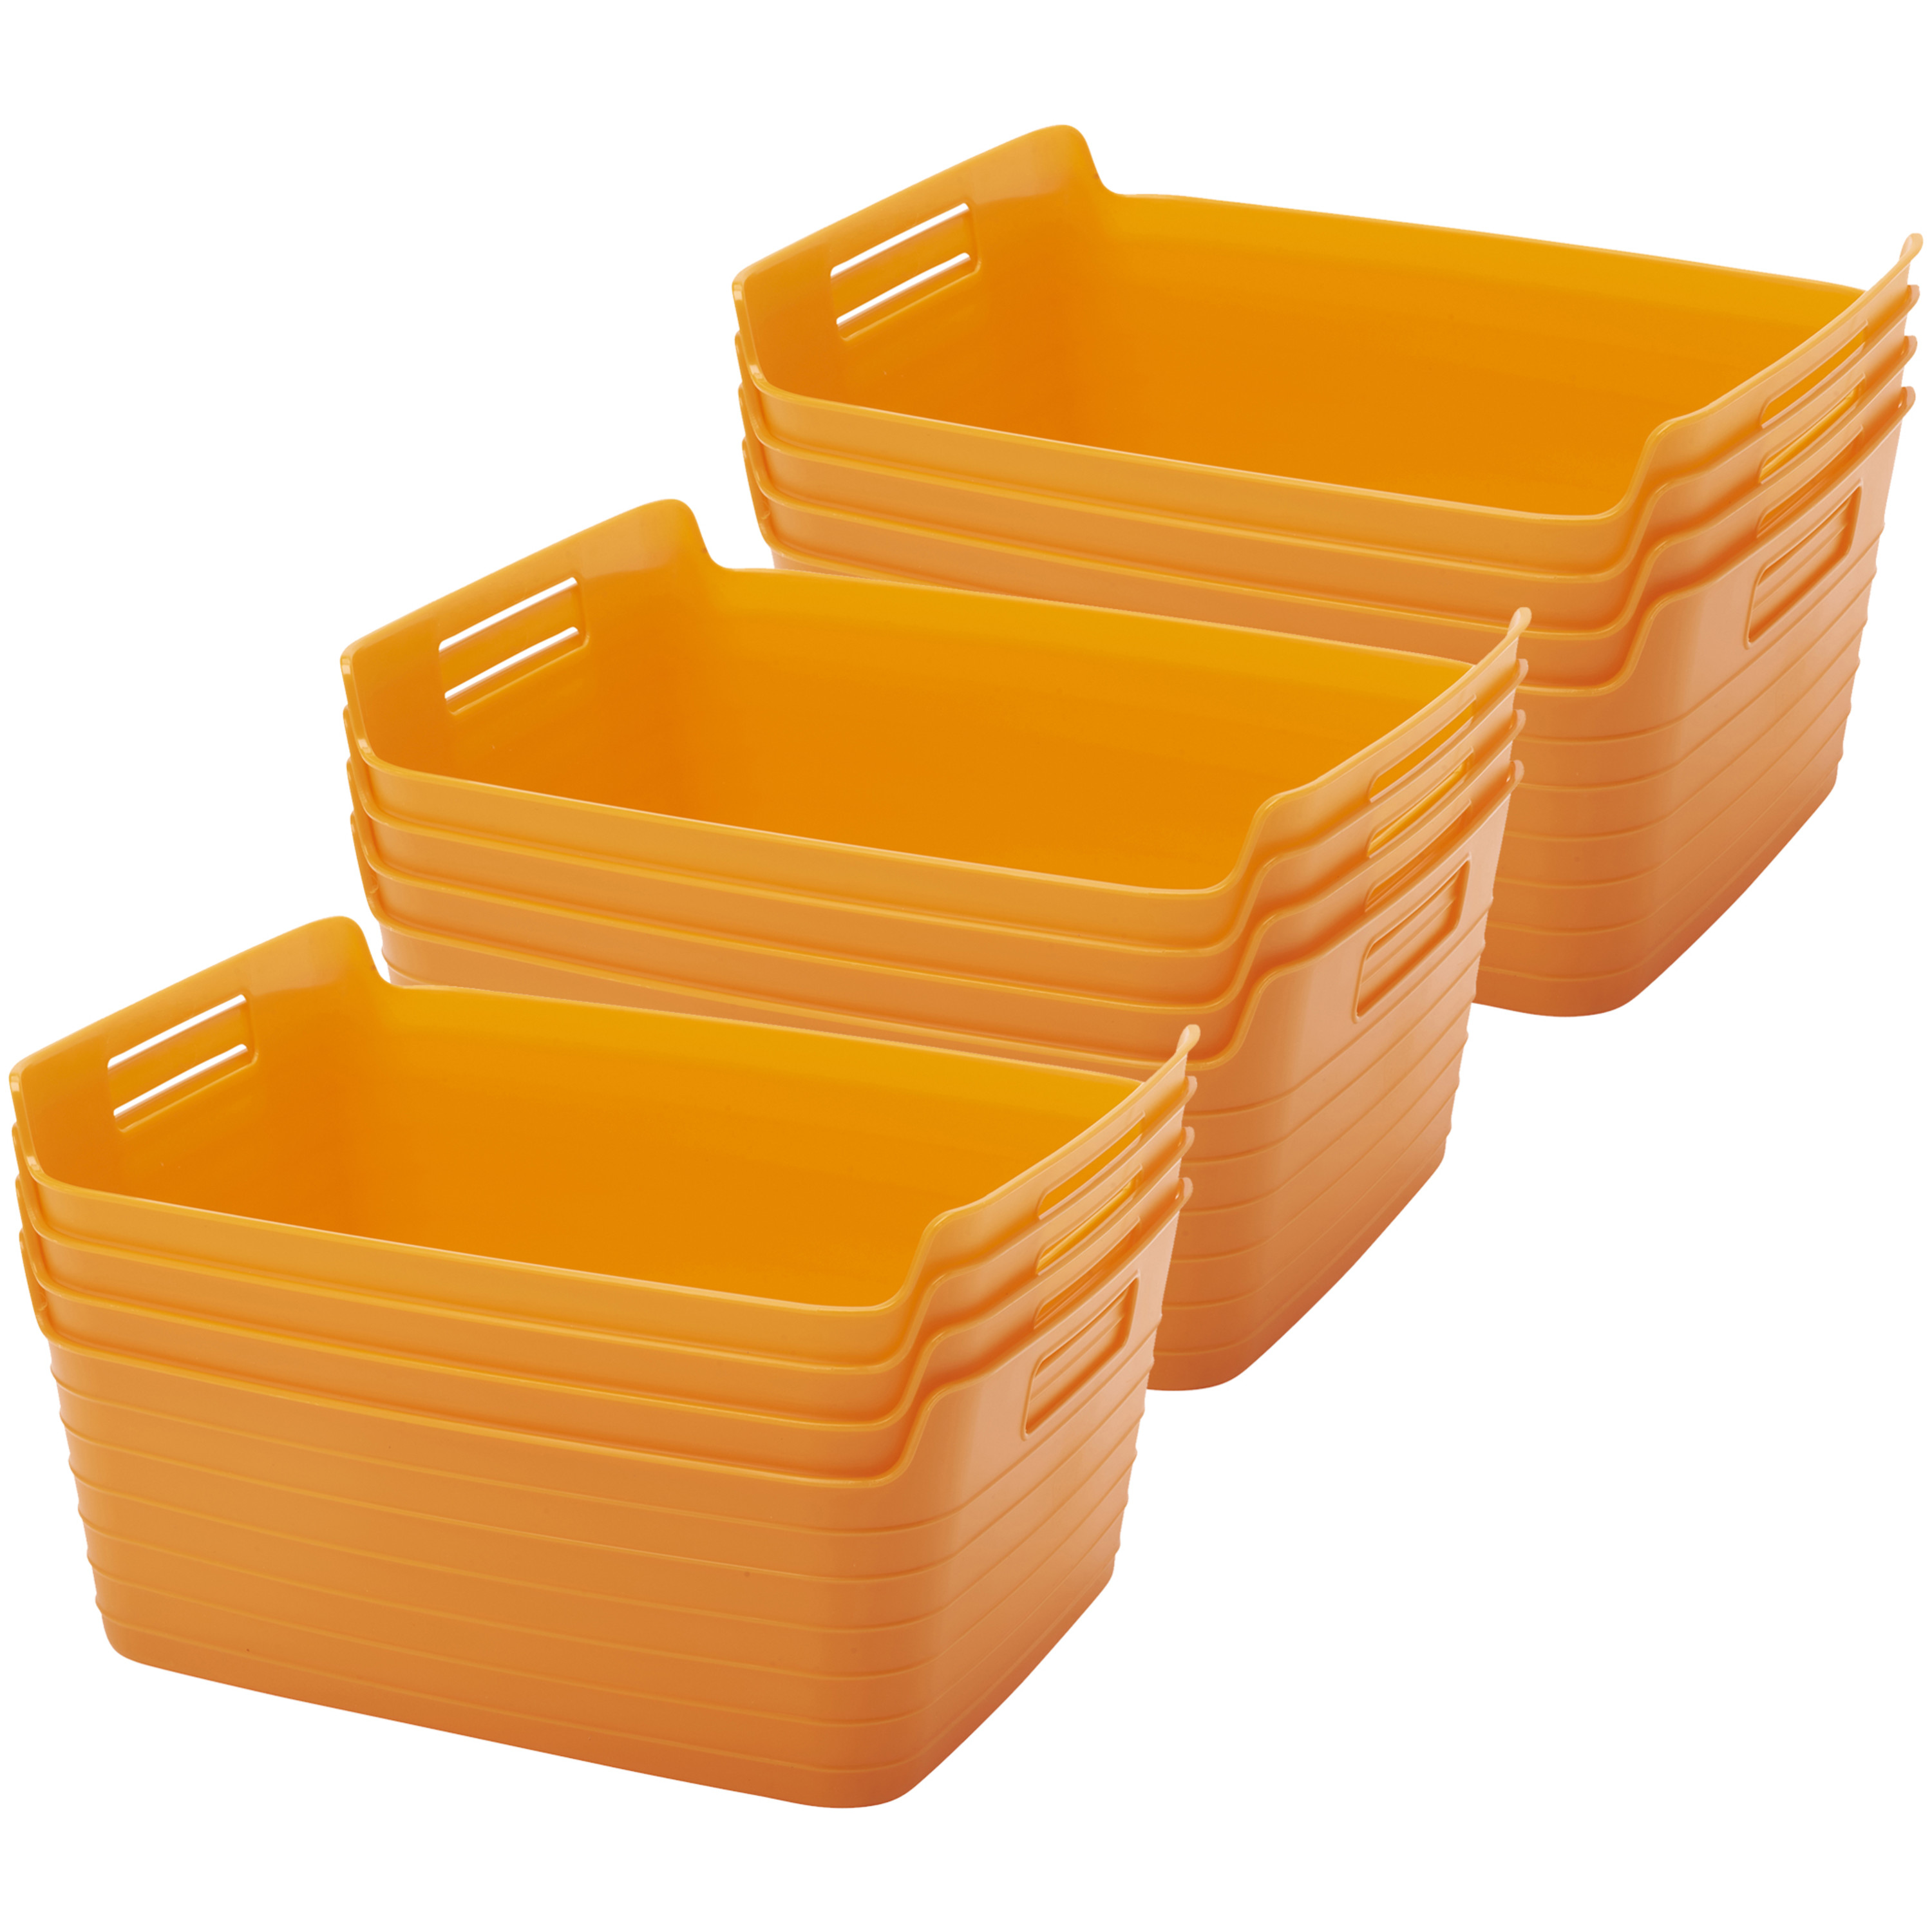 Large Bendi-Bin with Handles - Orange